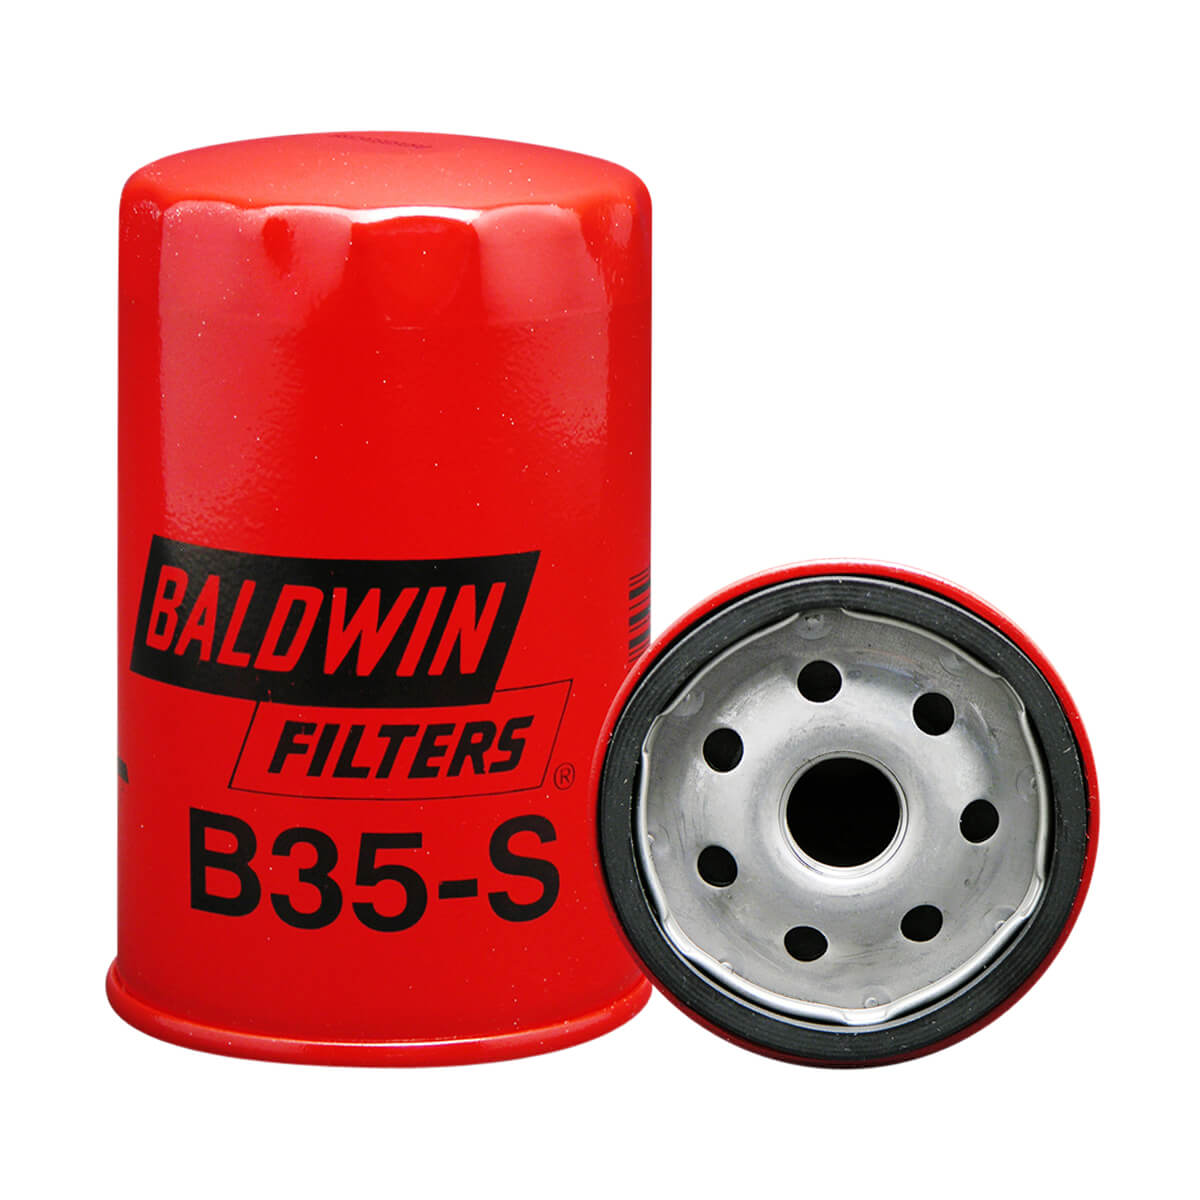 Baldwin Lube B35-S Filter